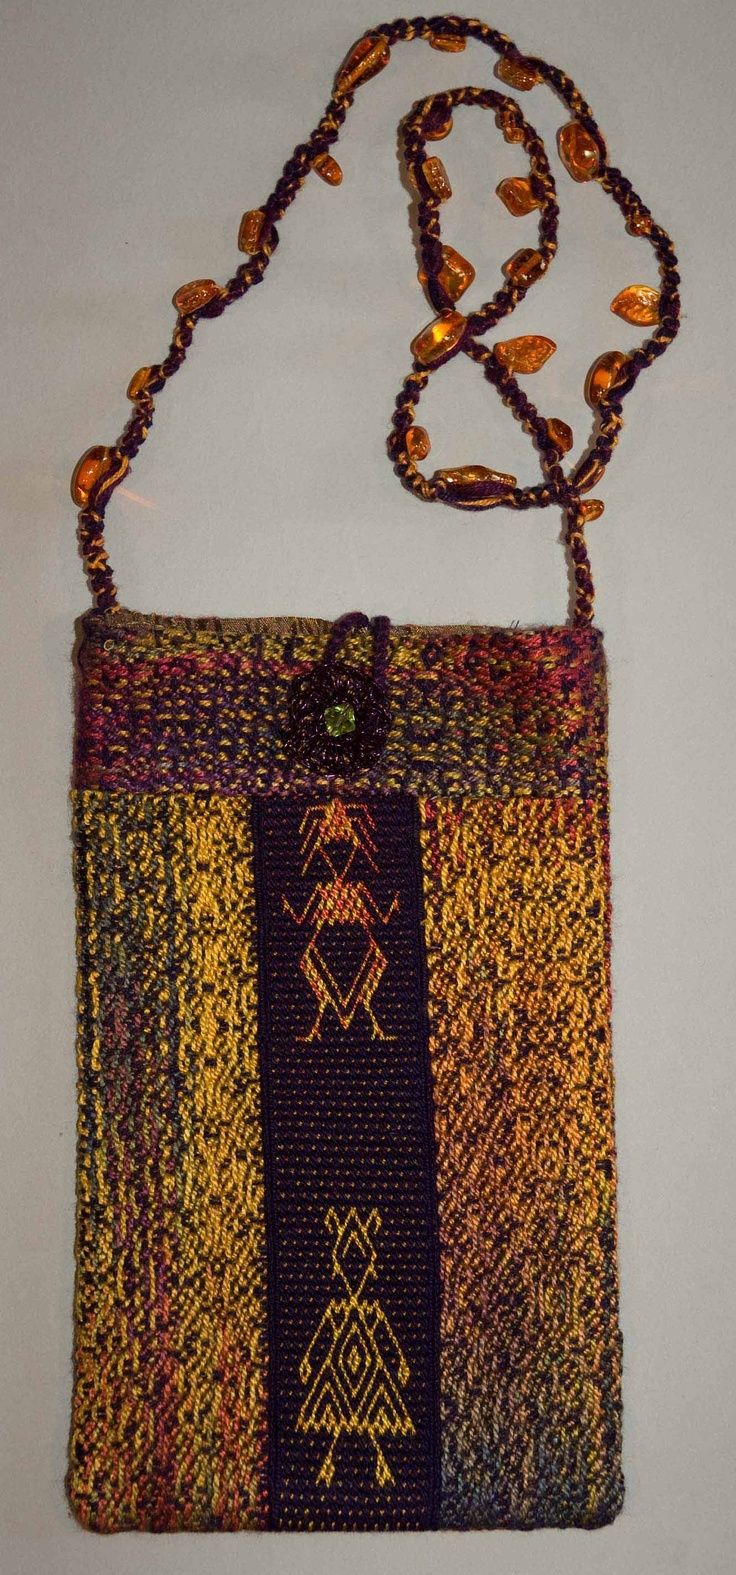 Bag made from leftover handwoven fabric